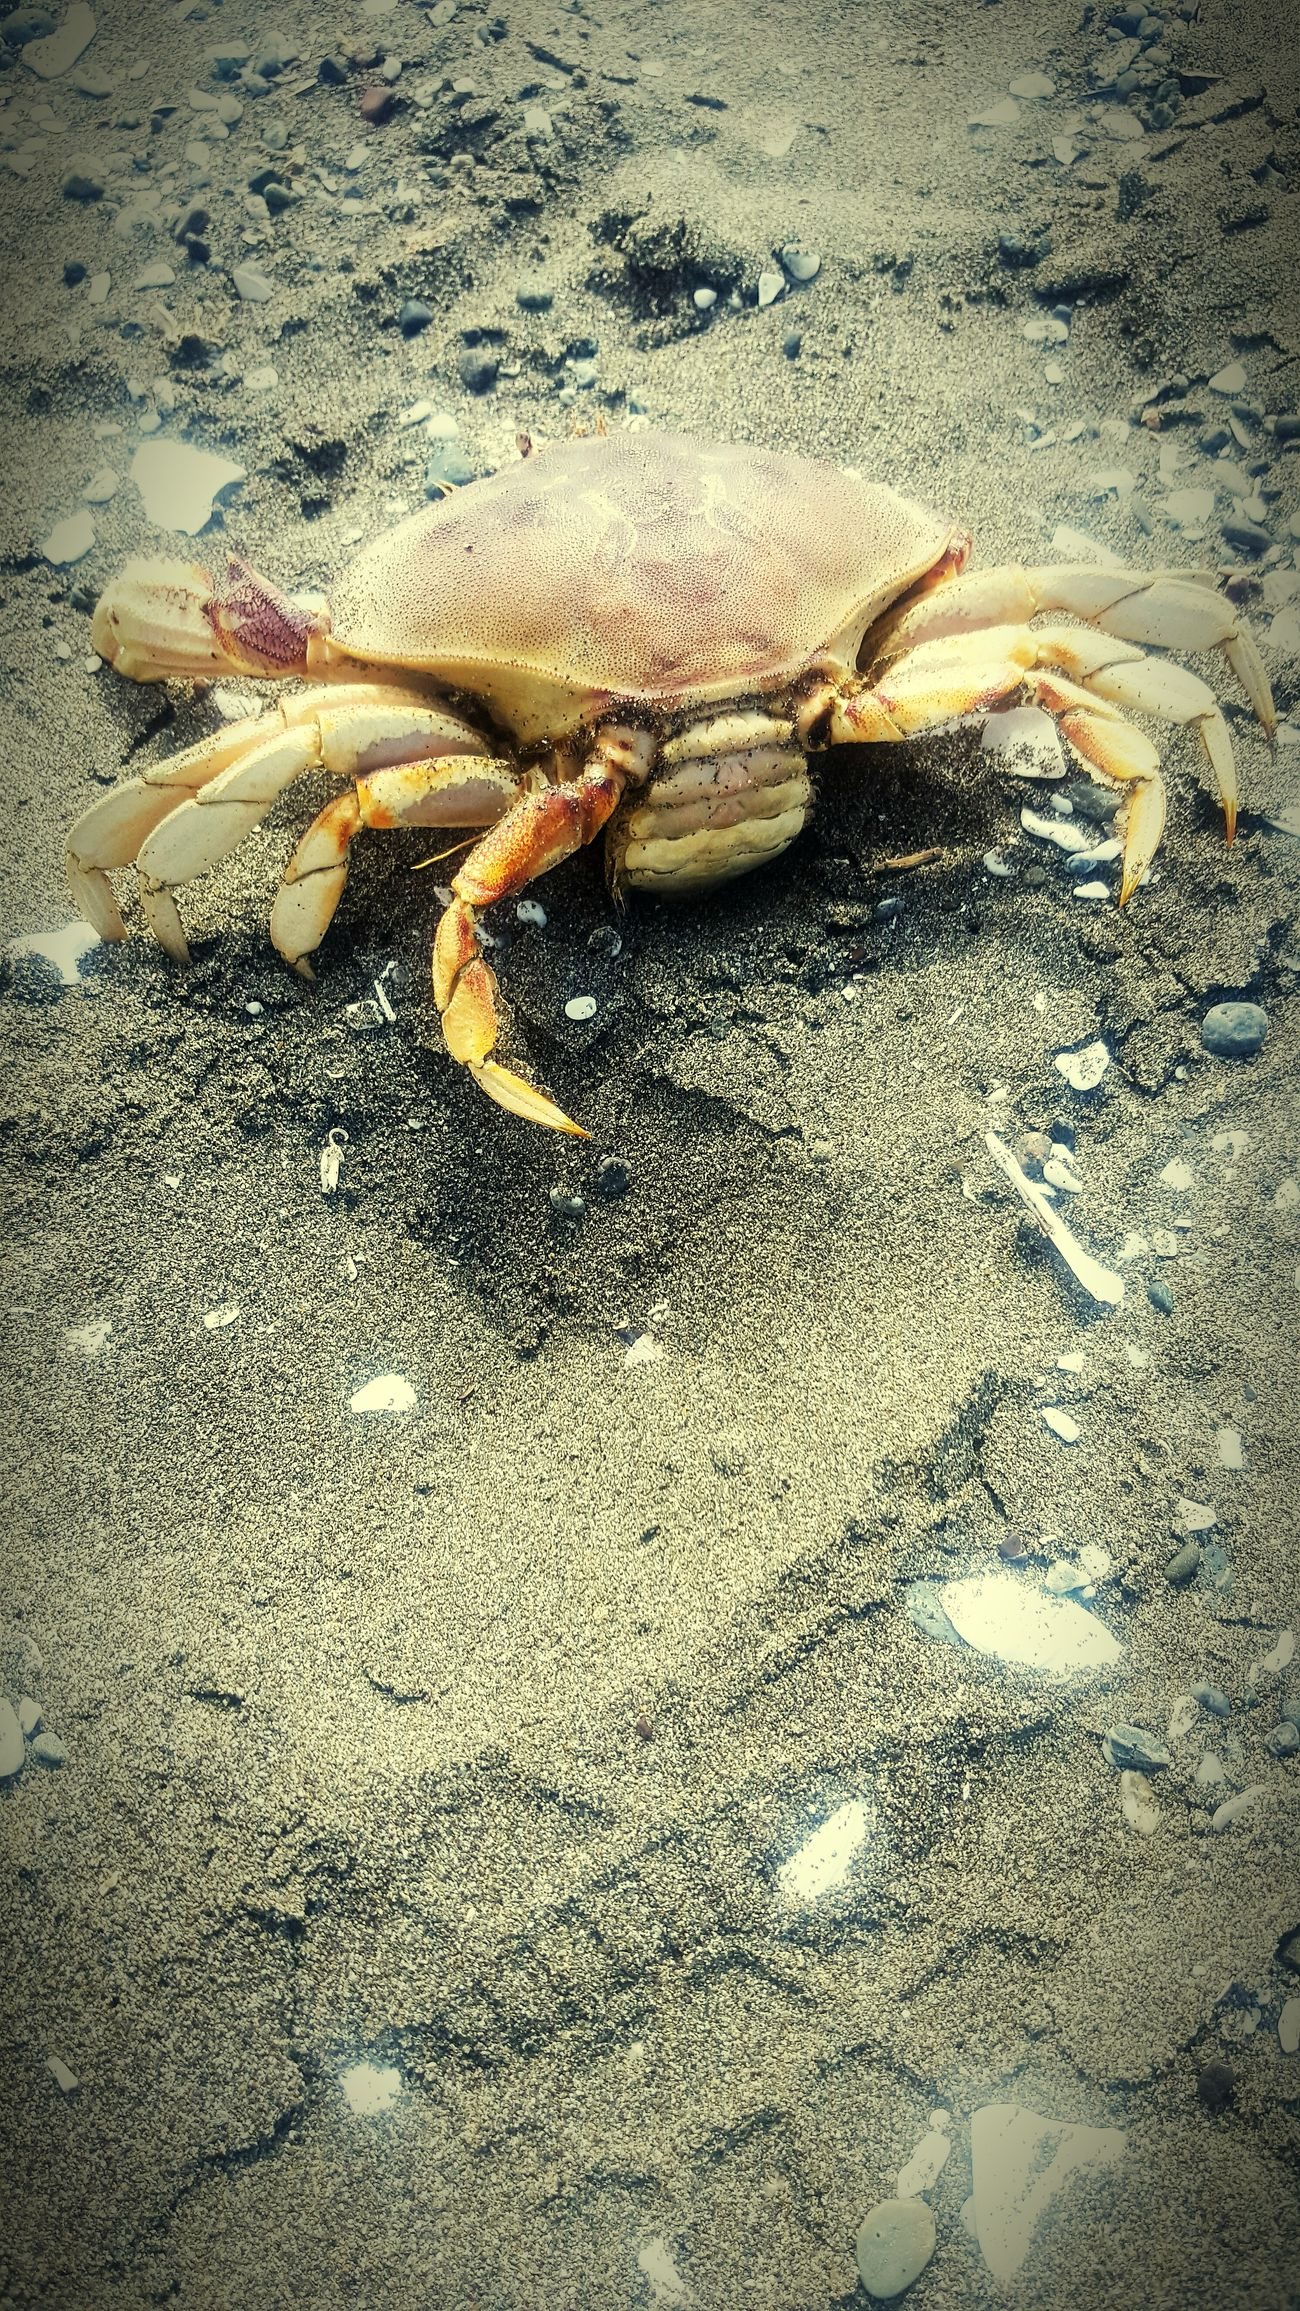 Dead crab at the Northcoastin California. Crab Dead Oceancreatures Sand Oceanlife Beachlife Showcase July